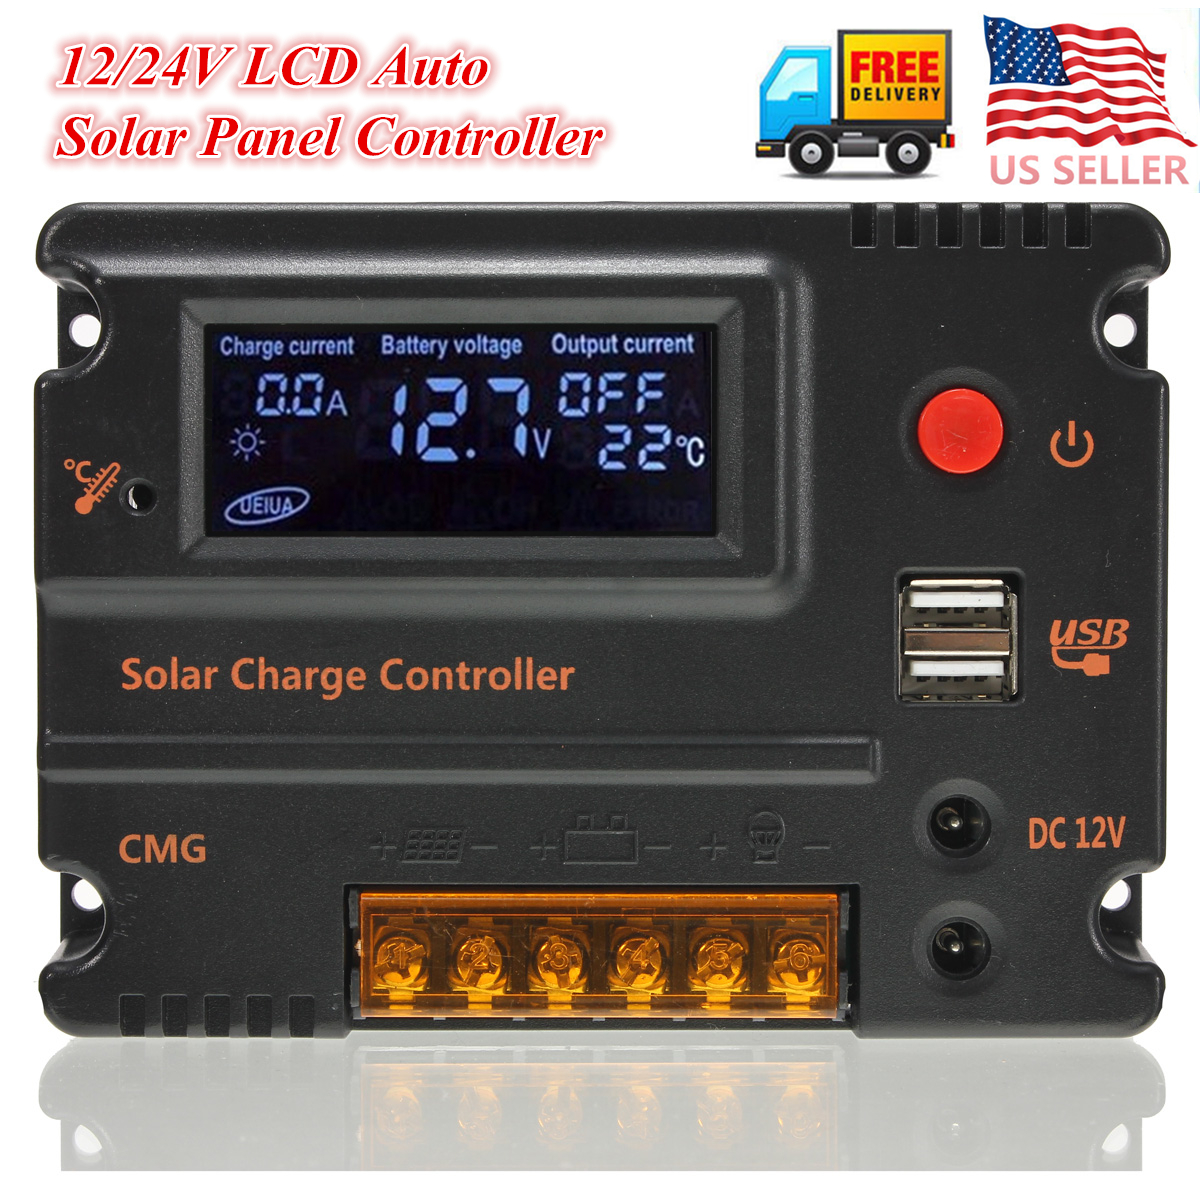 10A 12V-24V LCD Display PWM Solar Panel Regulator Charge Controller USB maylar 30a pwm solar panel charge controller 12v 24v auto battery regulator with lcd display